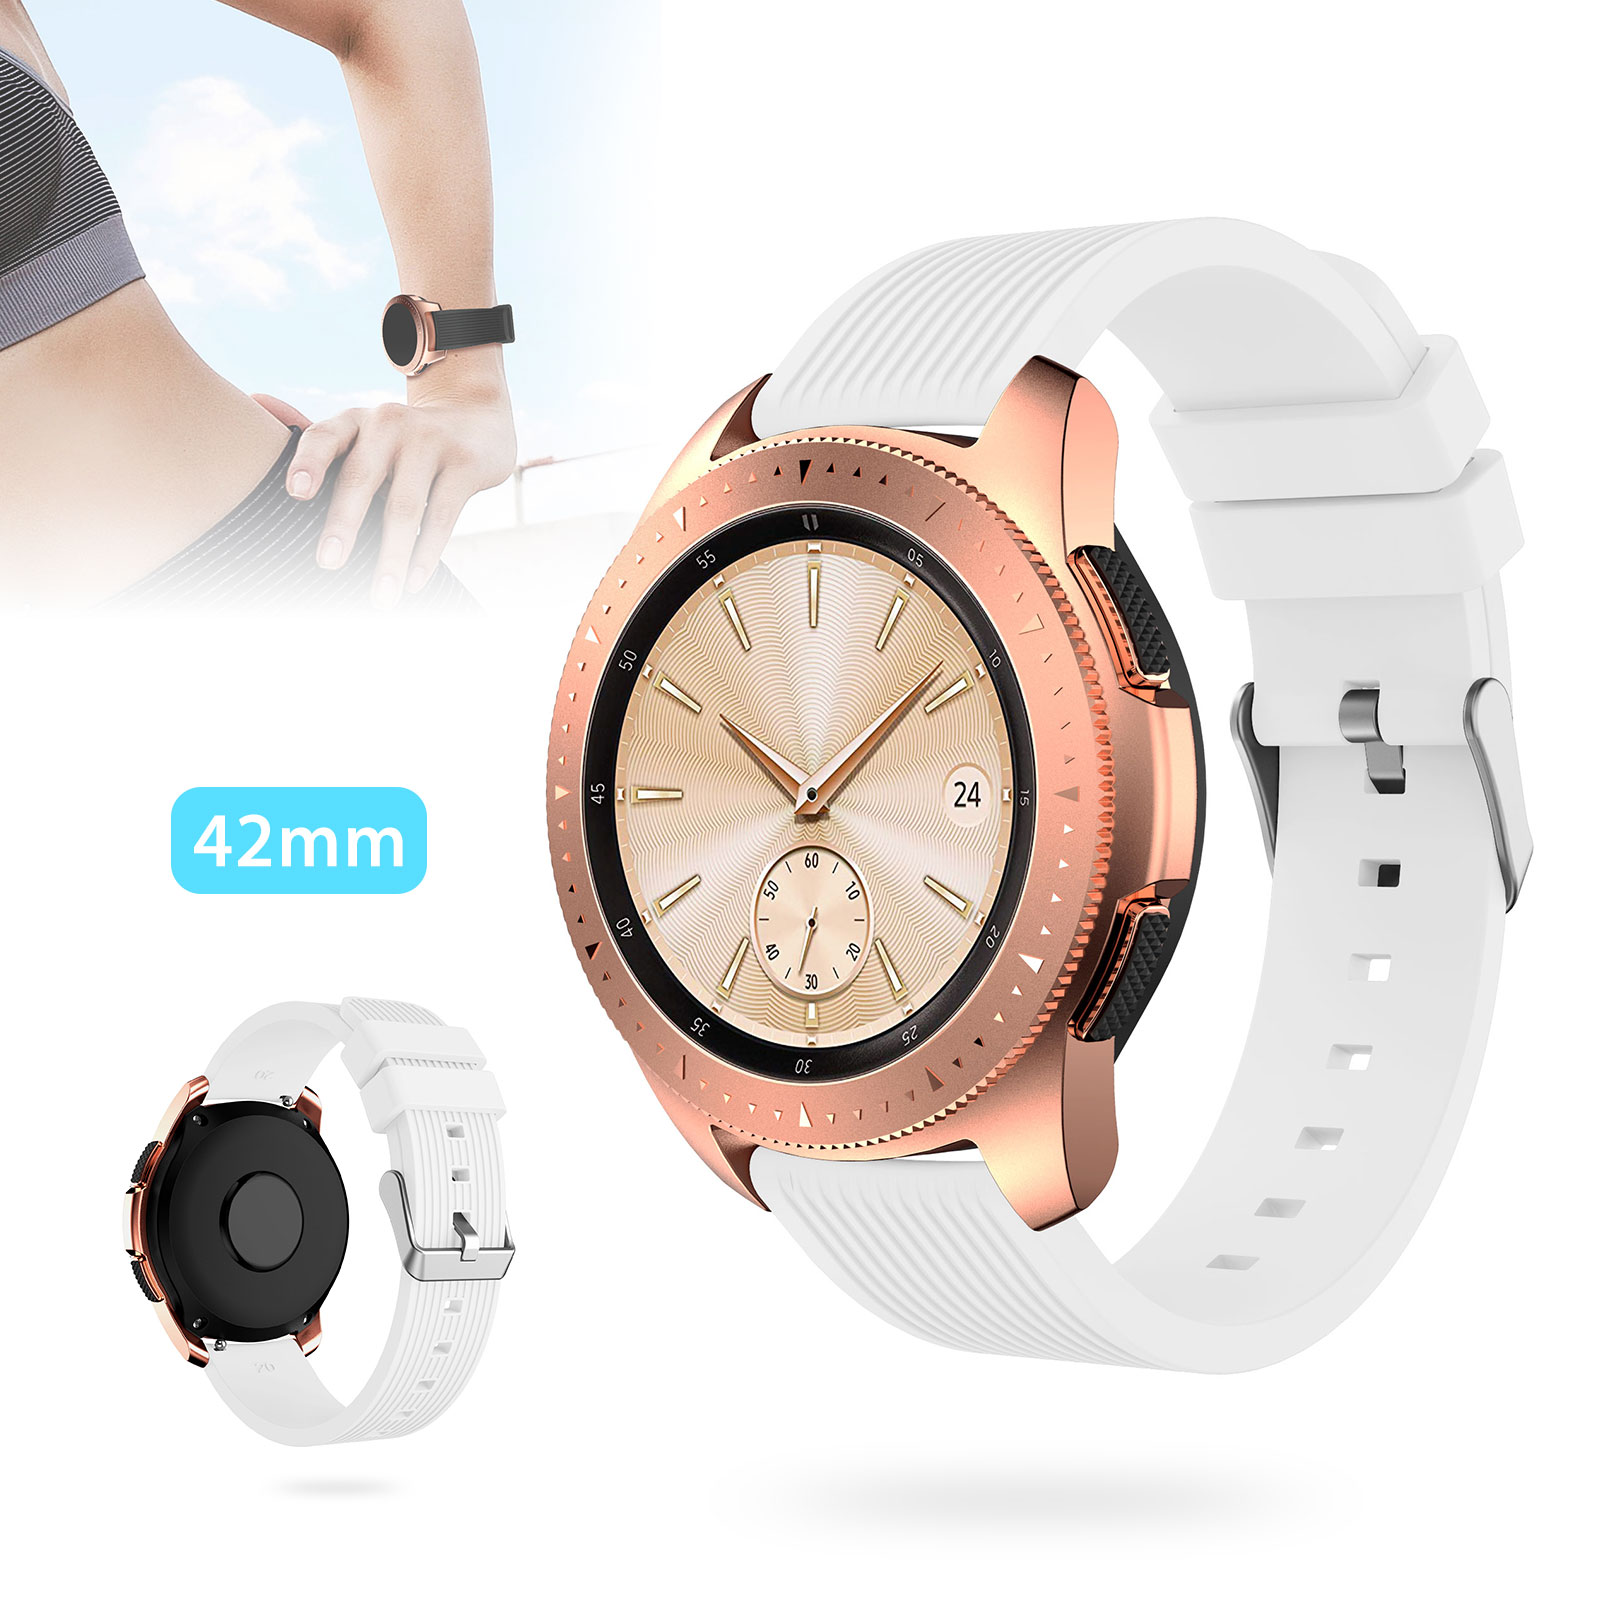 Silicone-Bracelet-Strap-Replacement-Watch-Band-For-Samsung-Galaxy-Watch-42mm thumbnail 17